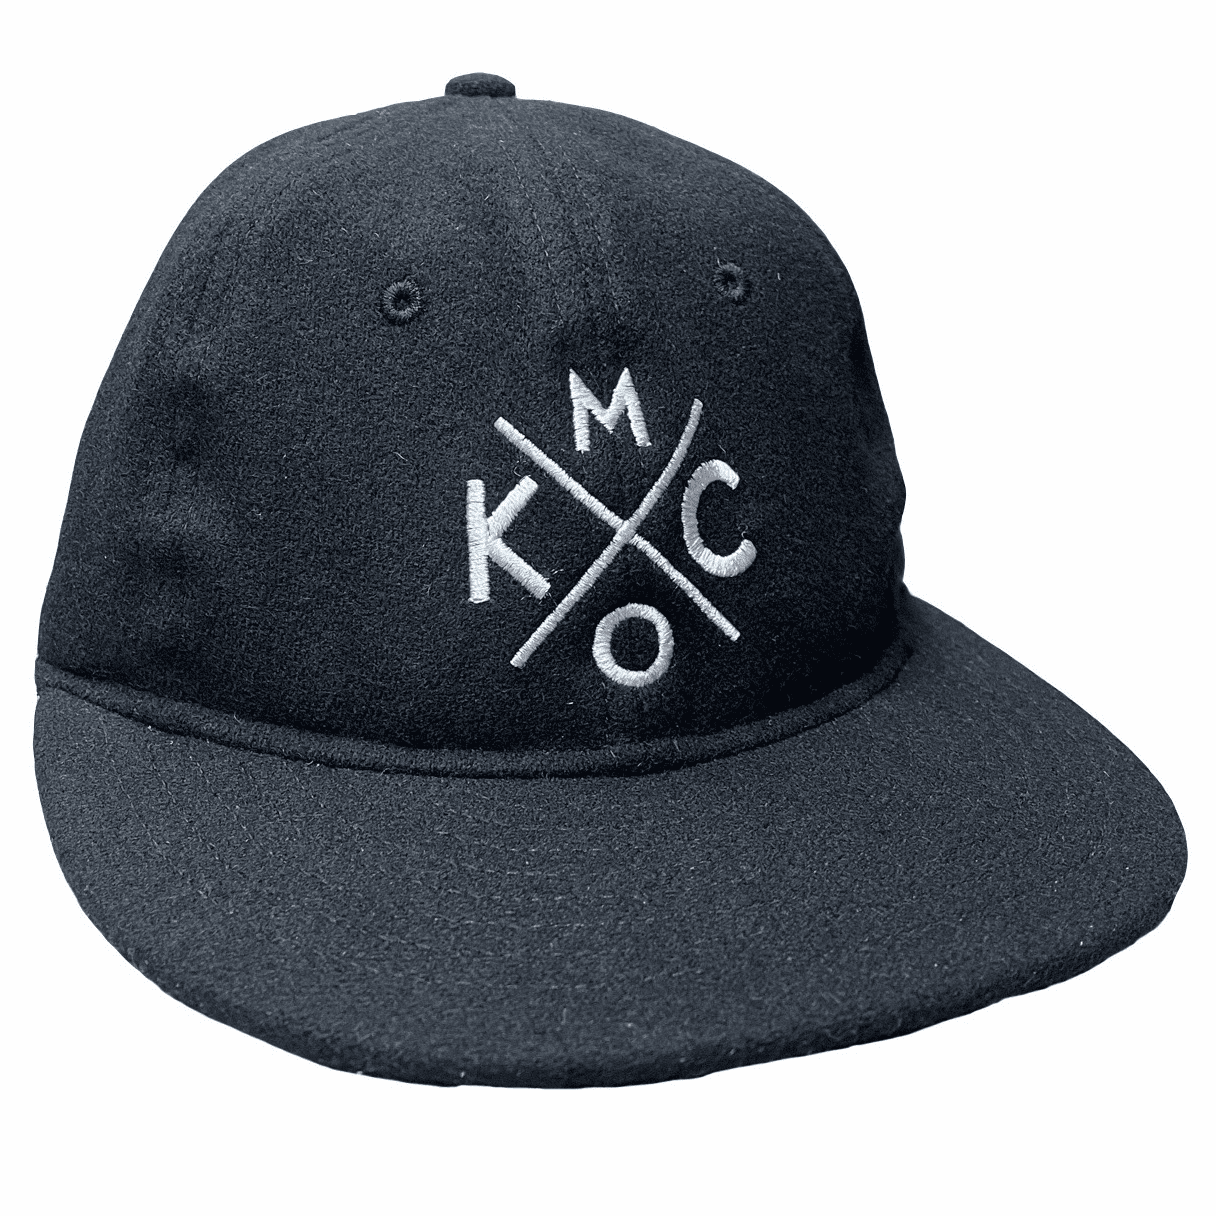 KCMO Wool Flatbill Hat<br>Black